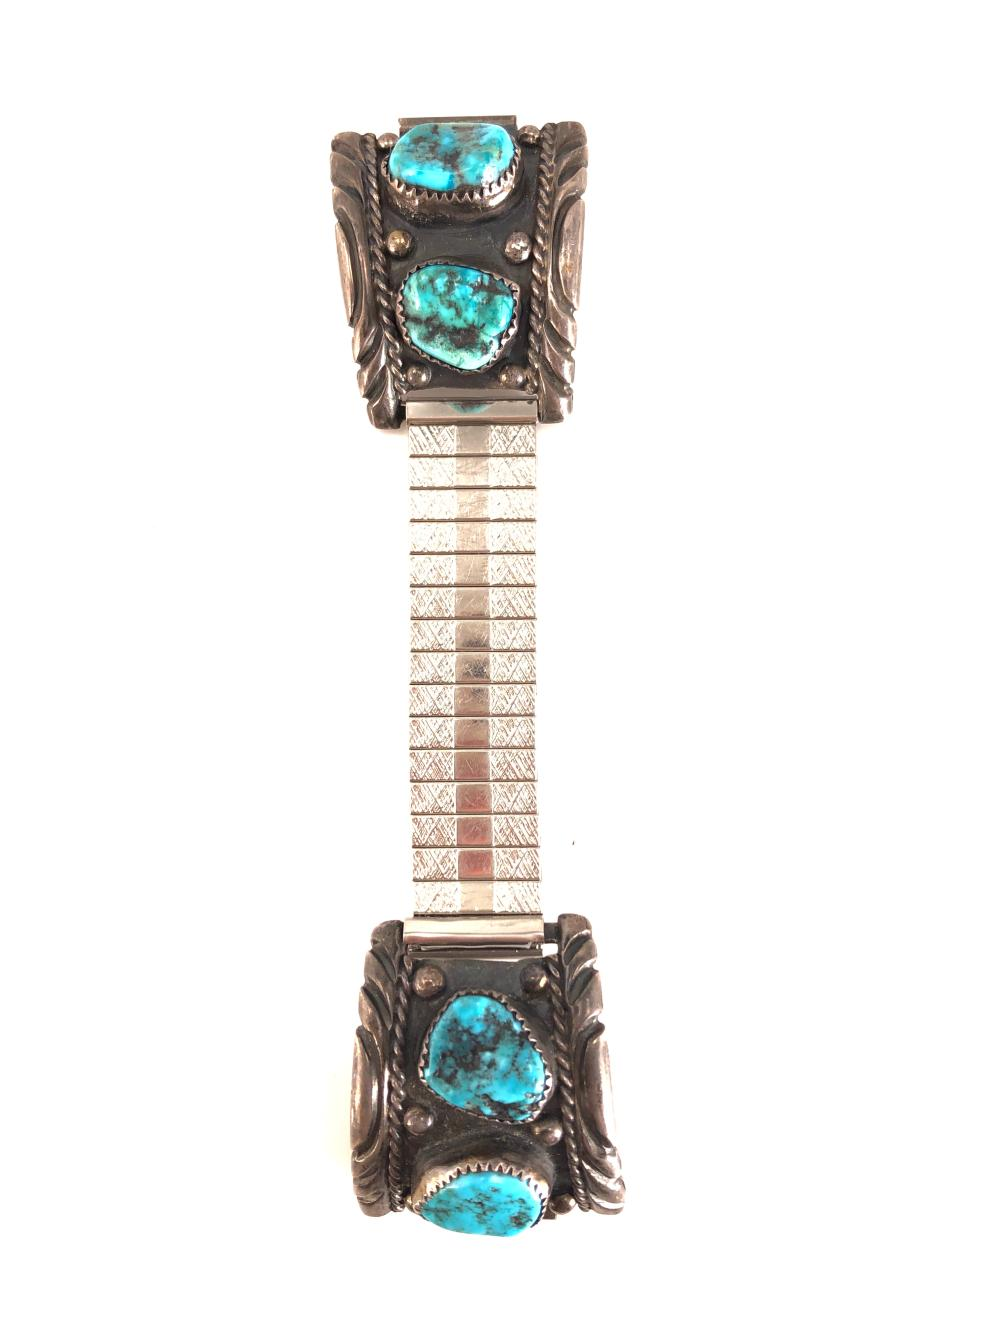 Vintage Native American Silver & Turquoise Watch Cuffs